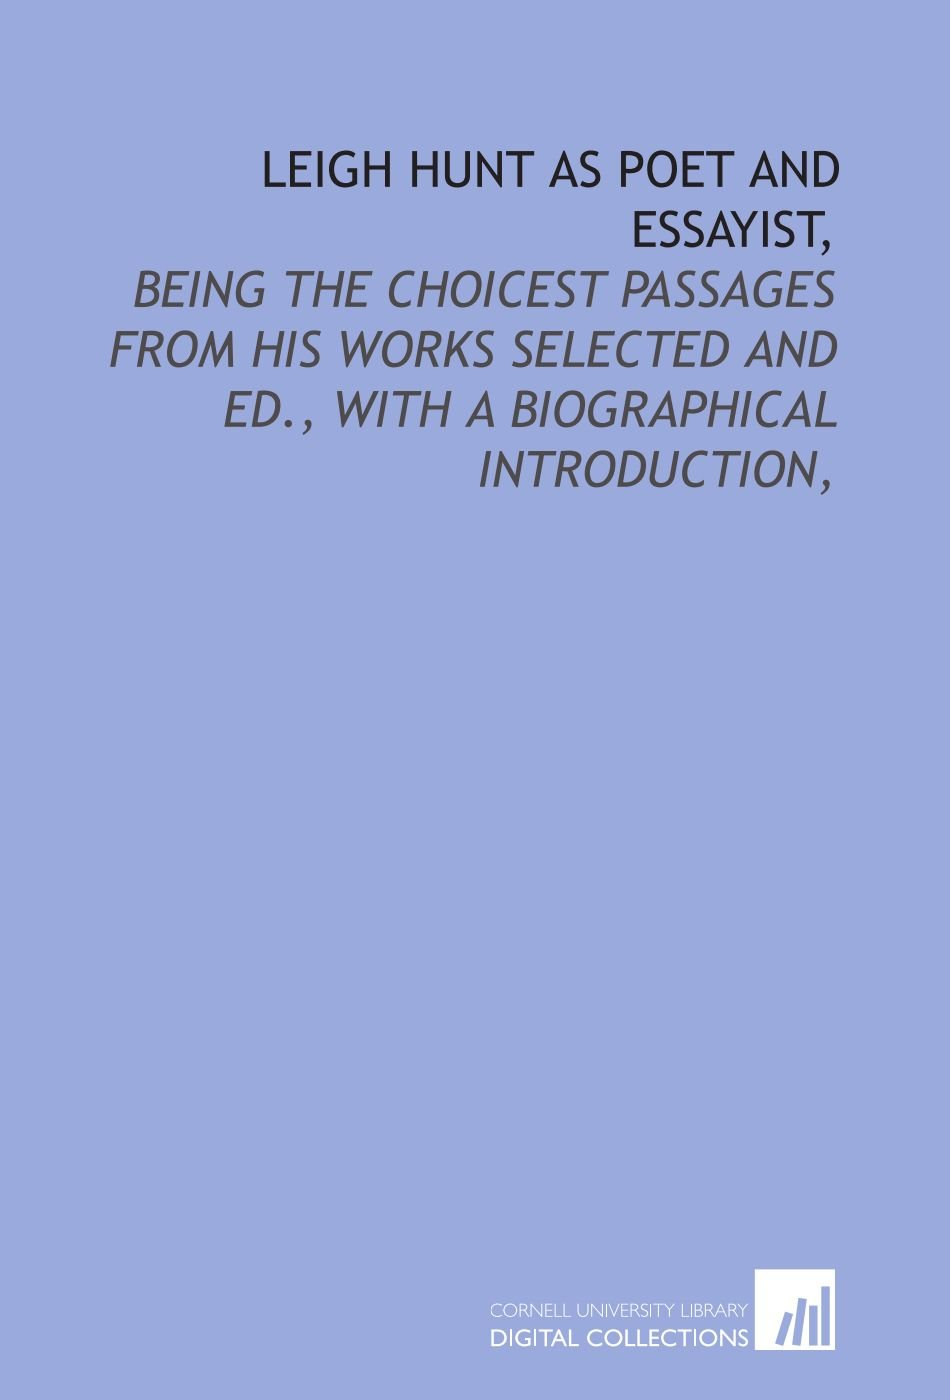 Leigh Hunt as poet and essayist,: being the choicest passages from his works selected and ed., with a biographical introduction, pdf epub